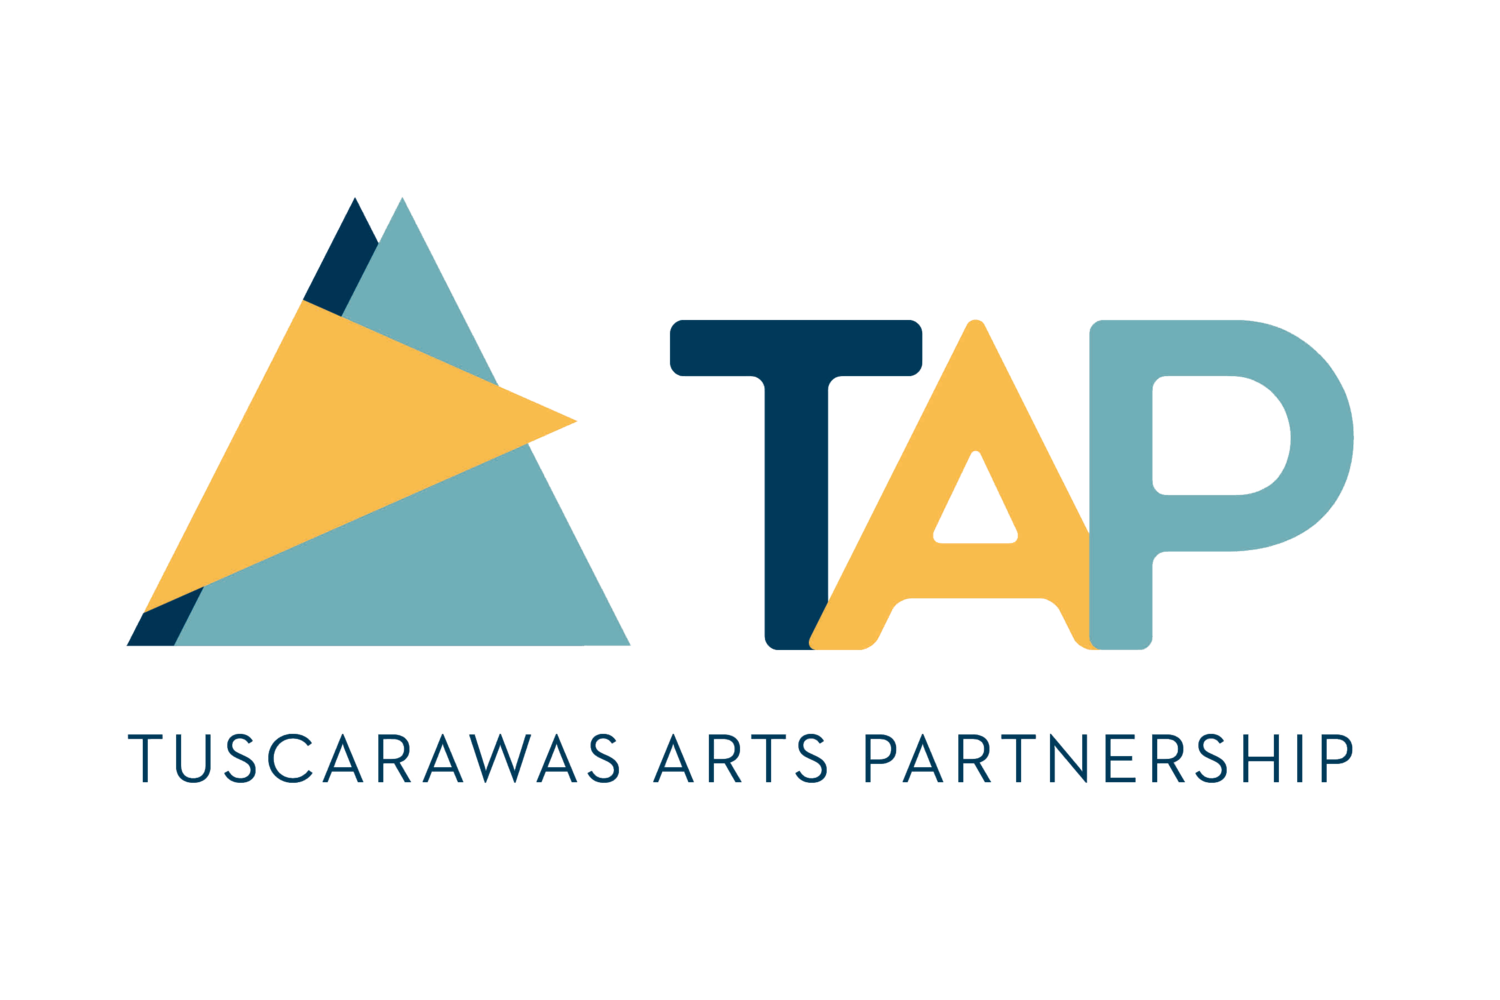 Tuscarawas Arts Partnership